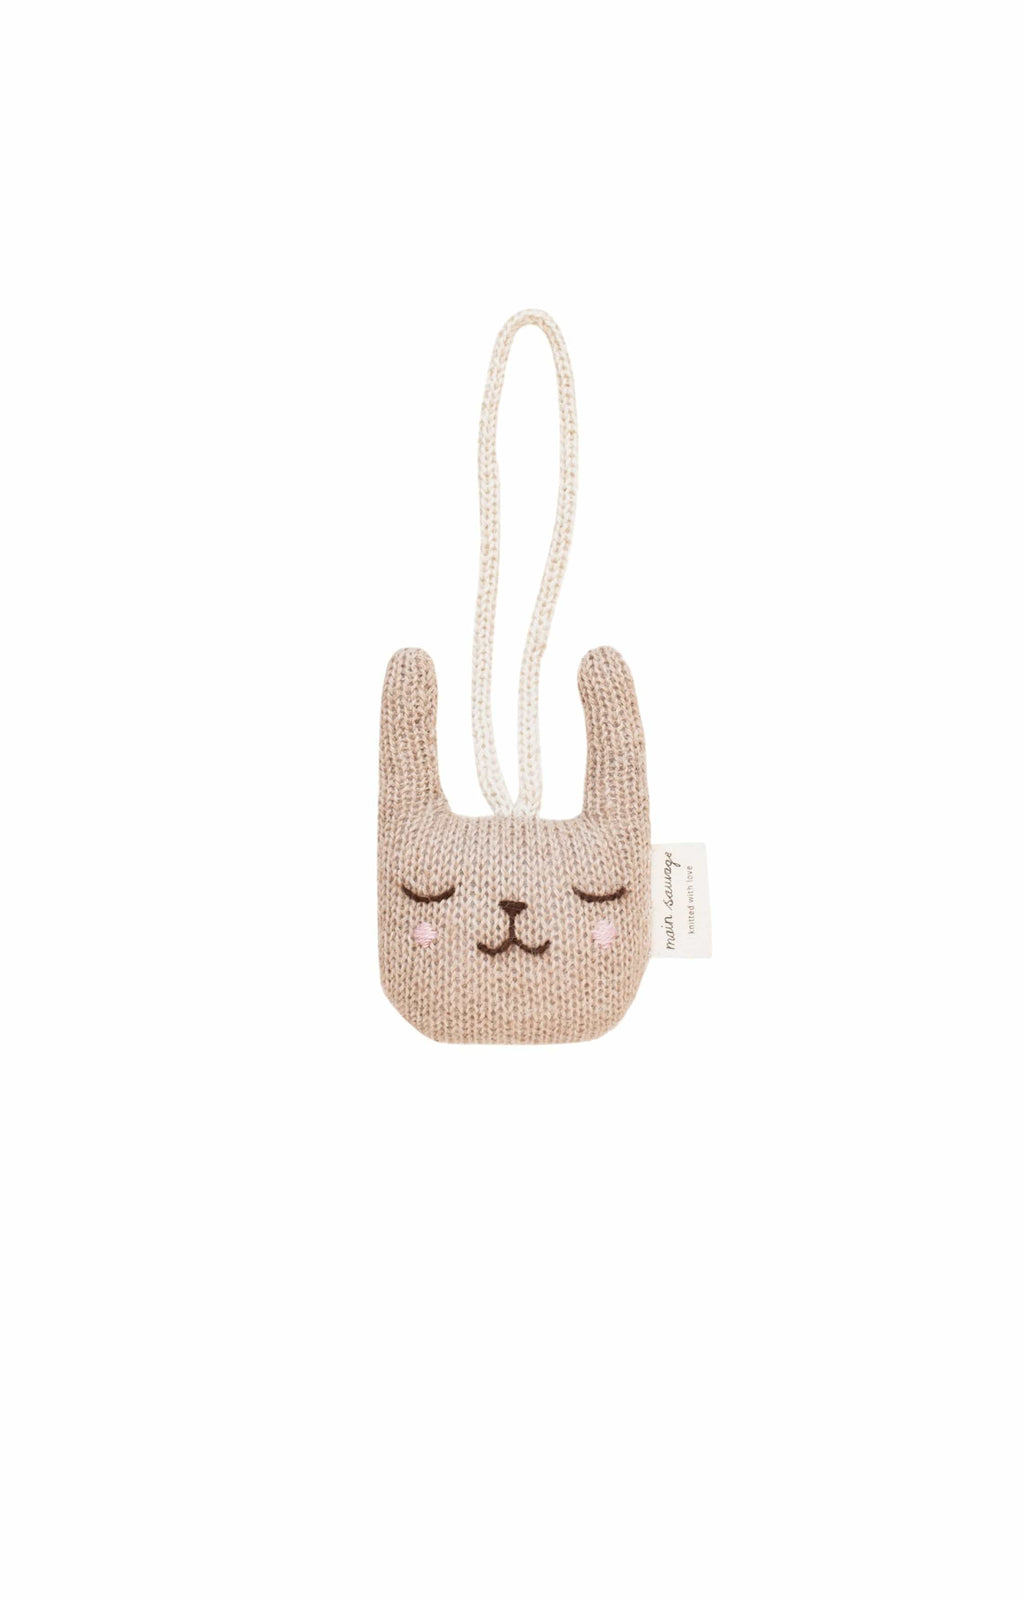 Main Sauvage rabbit hanging rattle